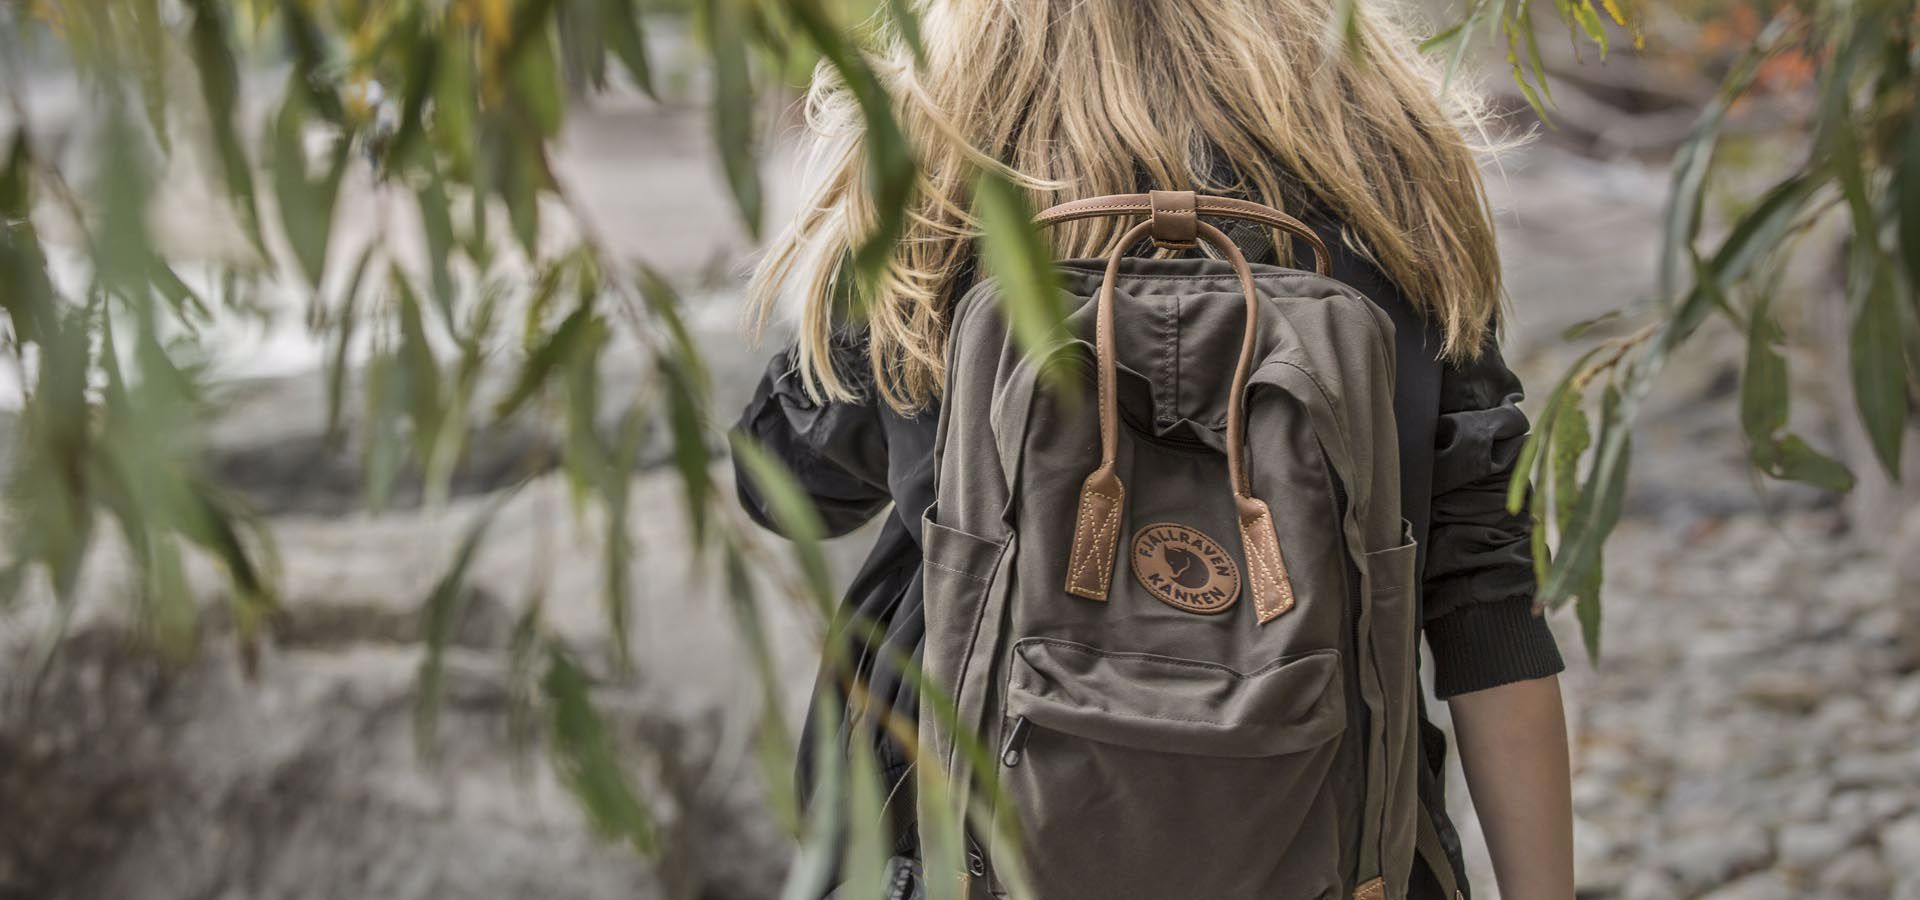 Advice on Backpacks from AGC's Lightweight Lady